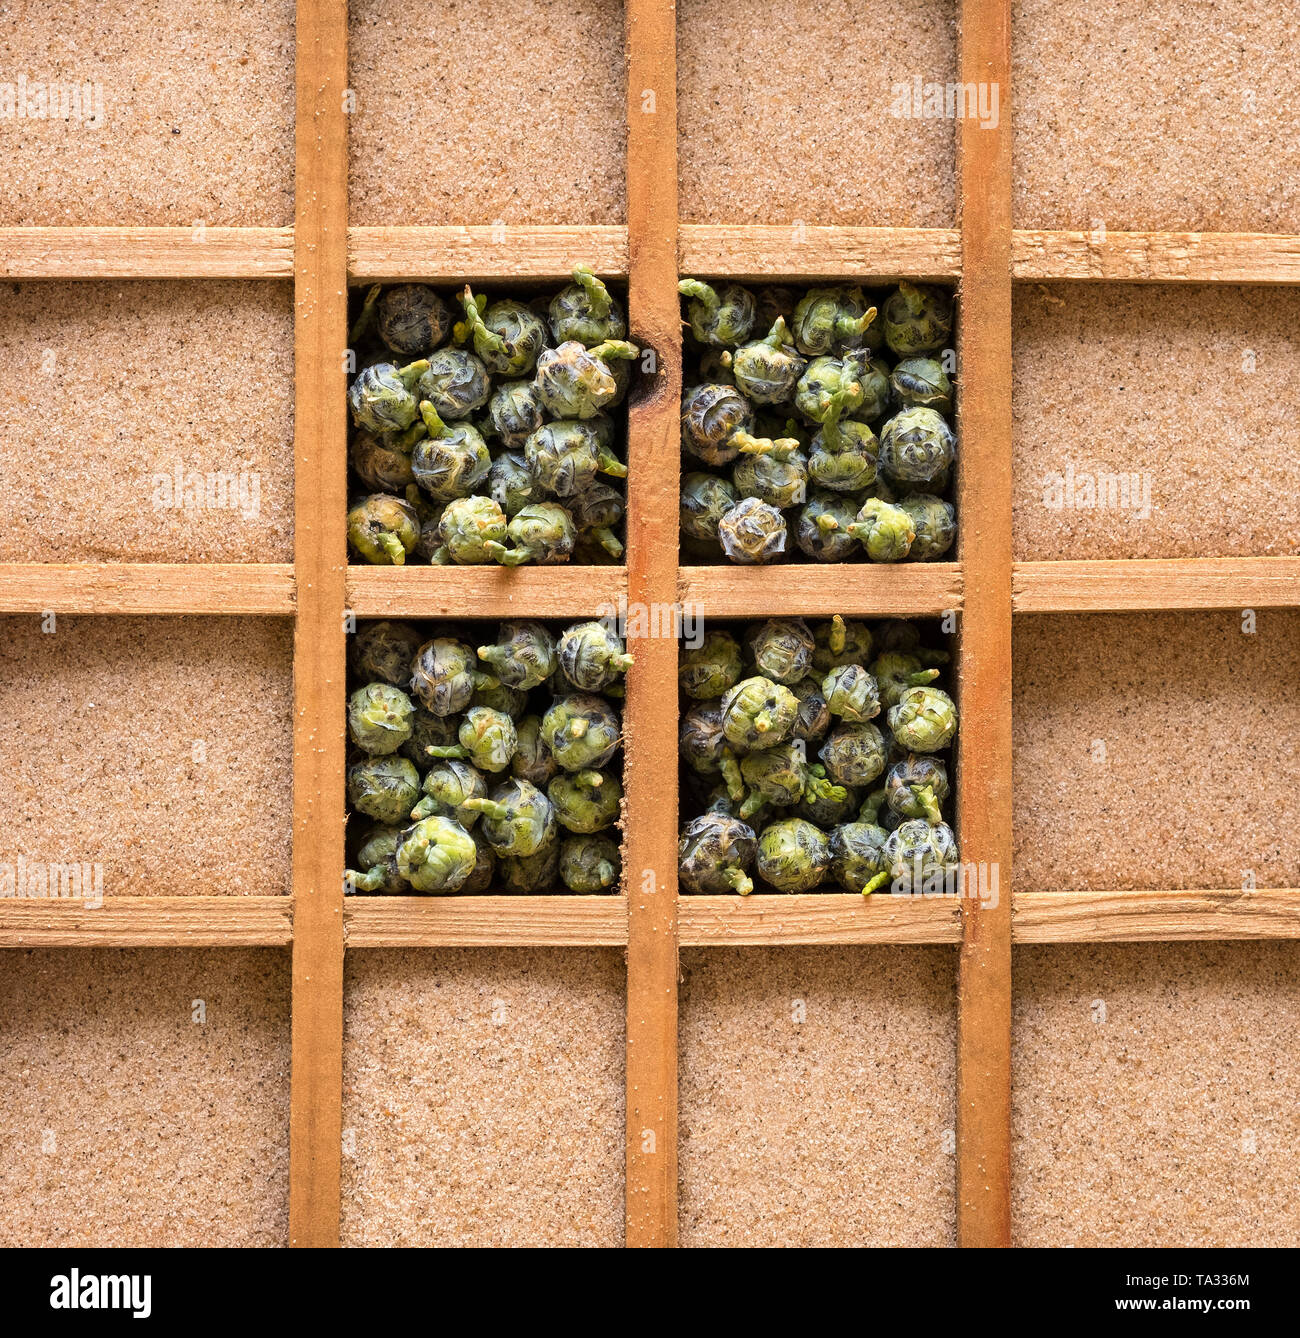 Pine nuts and sand in wooden boxes - Stock Image